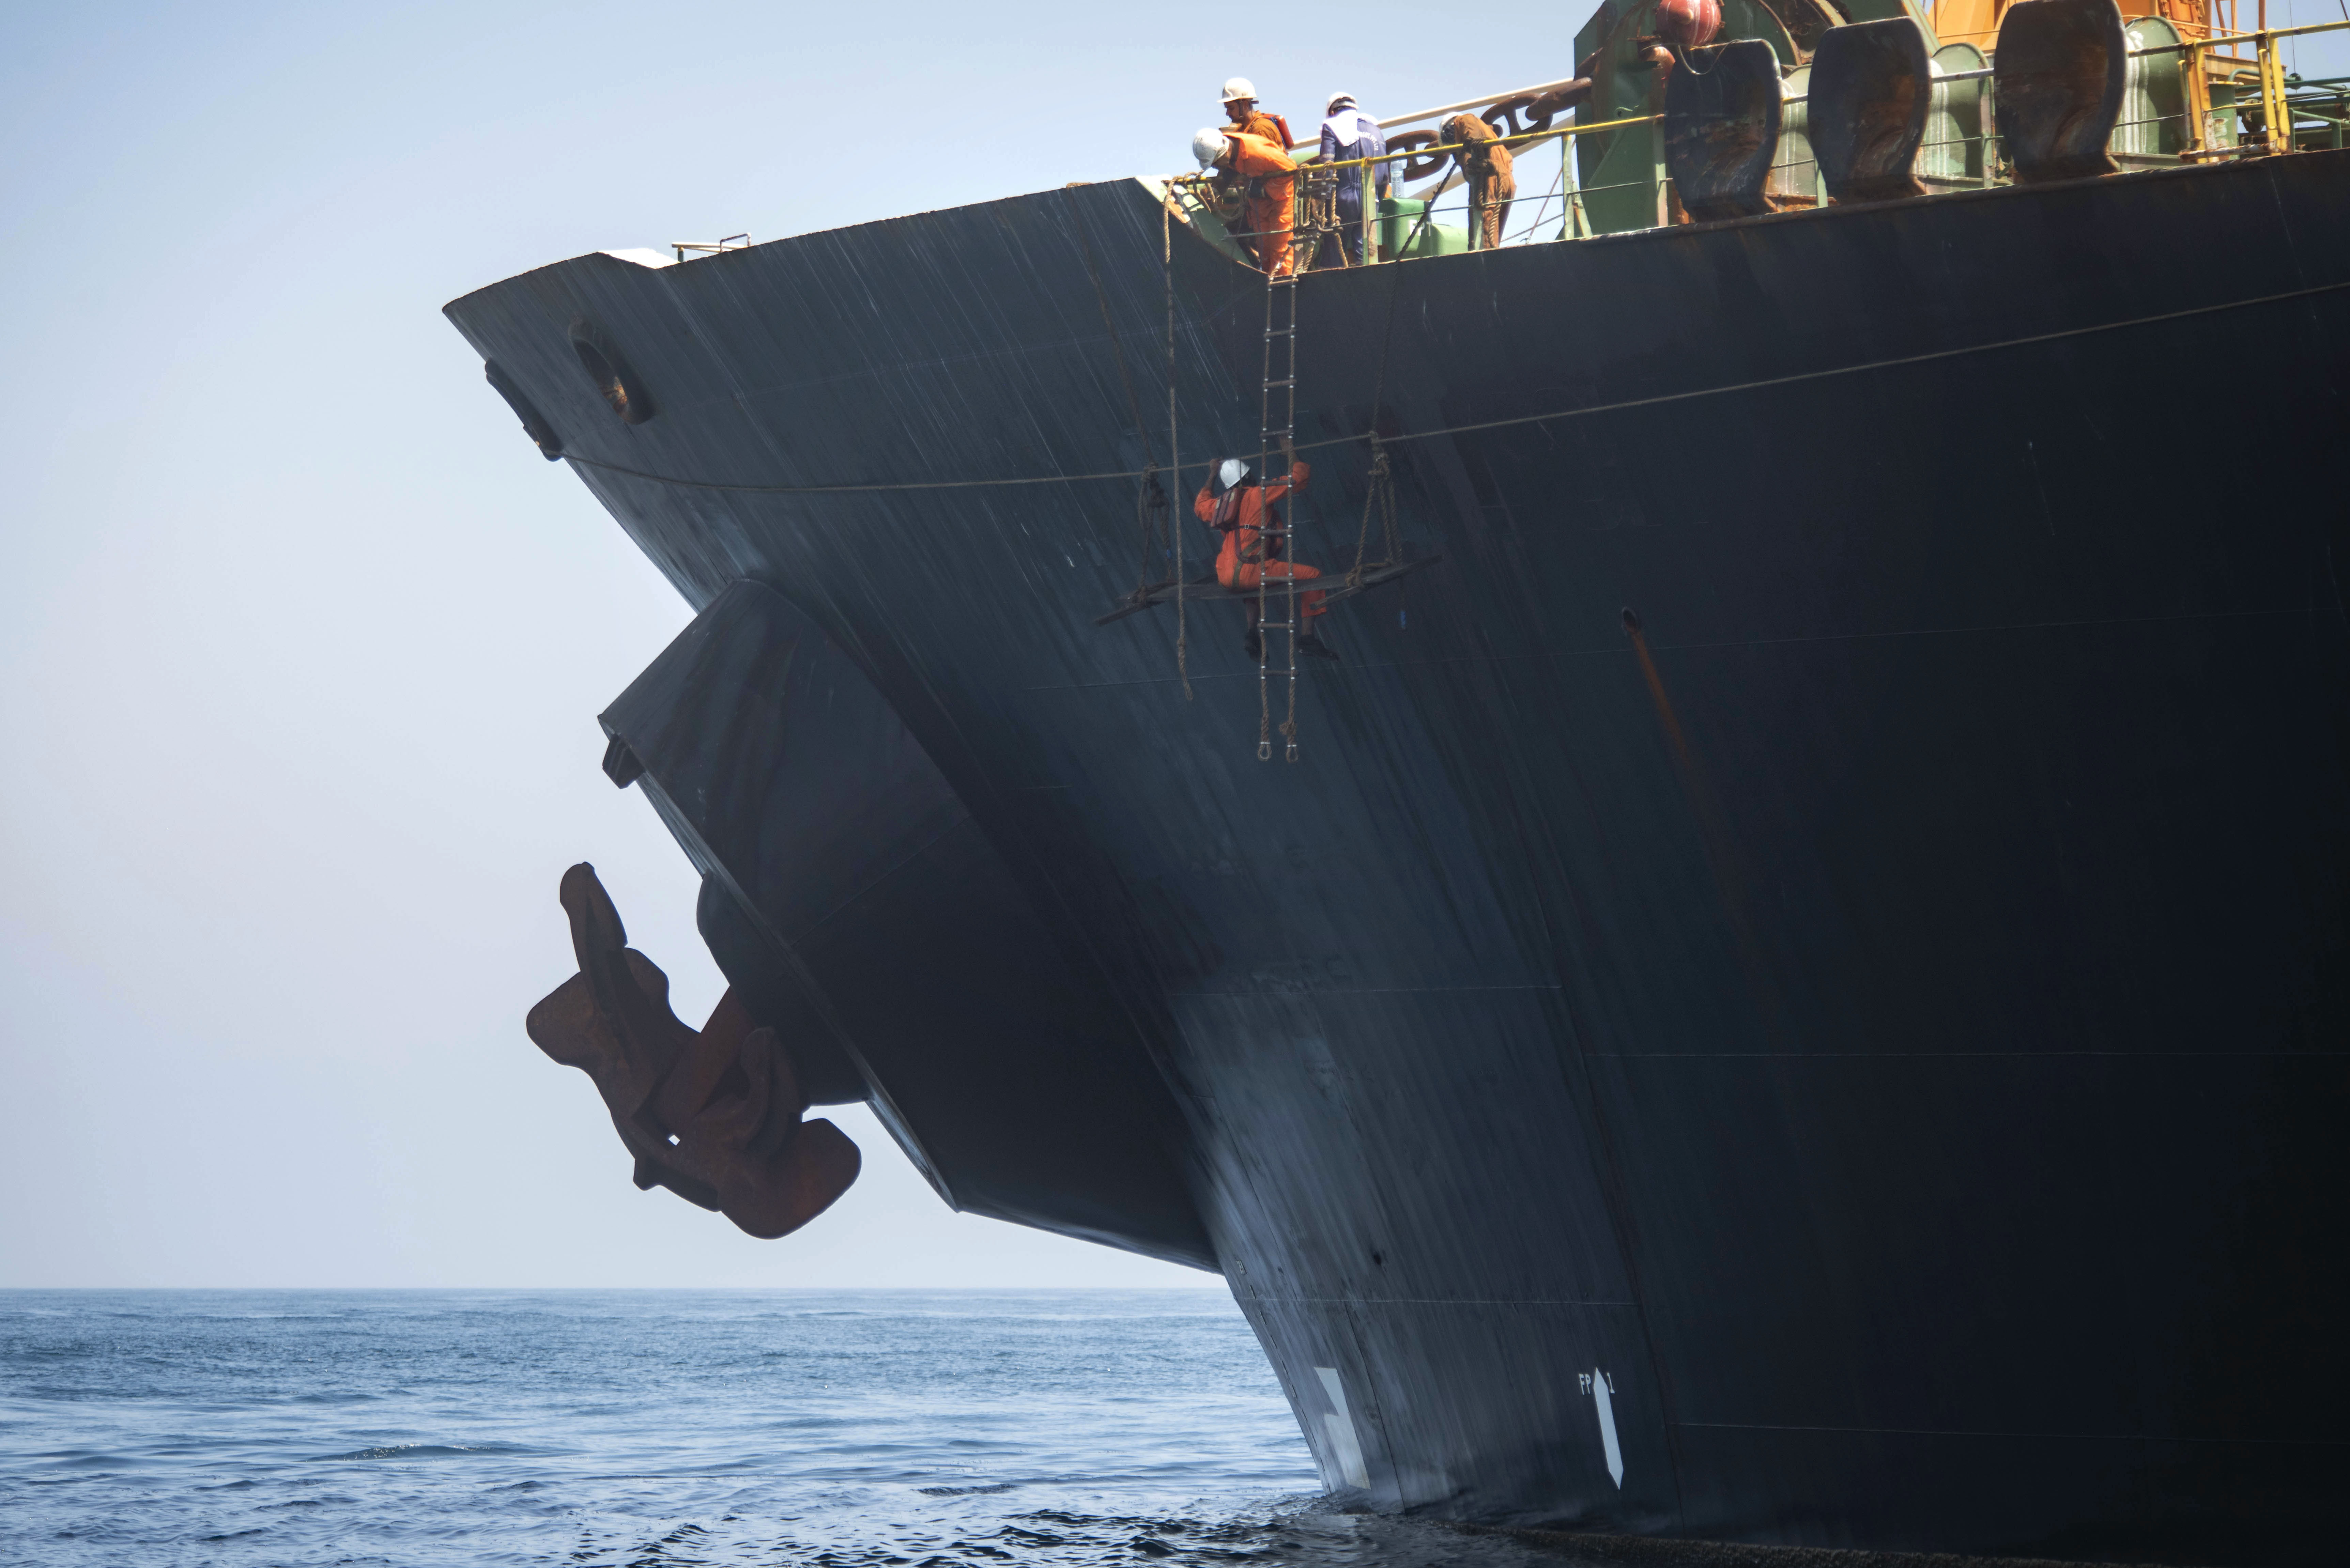 Greece vows to refuse aid to Iranian oil tanker eye'd by US